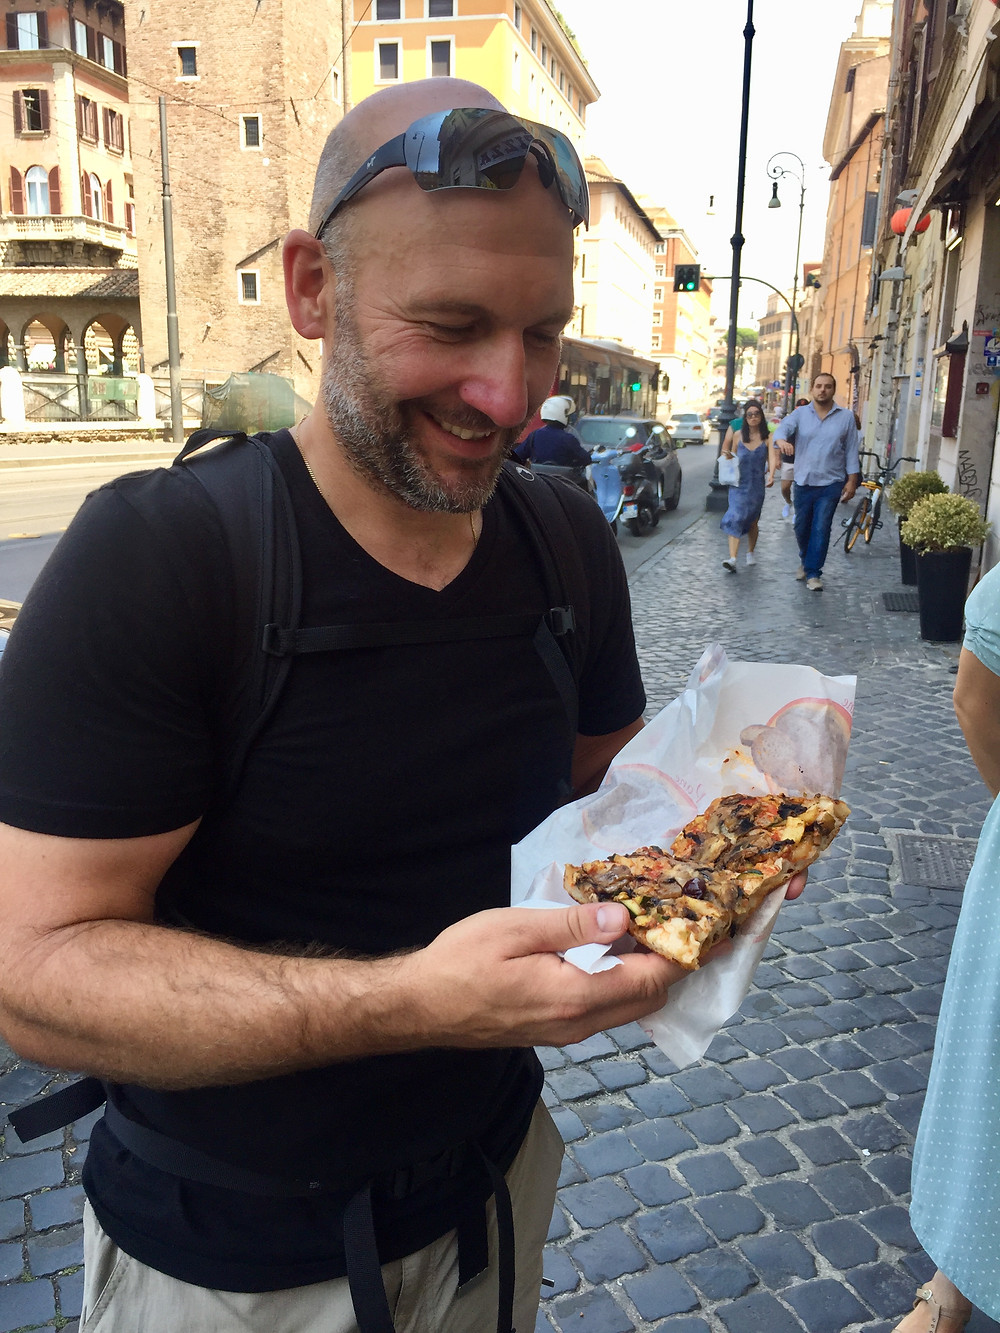 Man smiles ready to eat slice of pizza on a Rome street